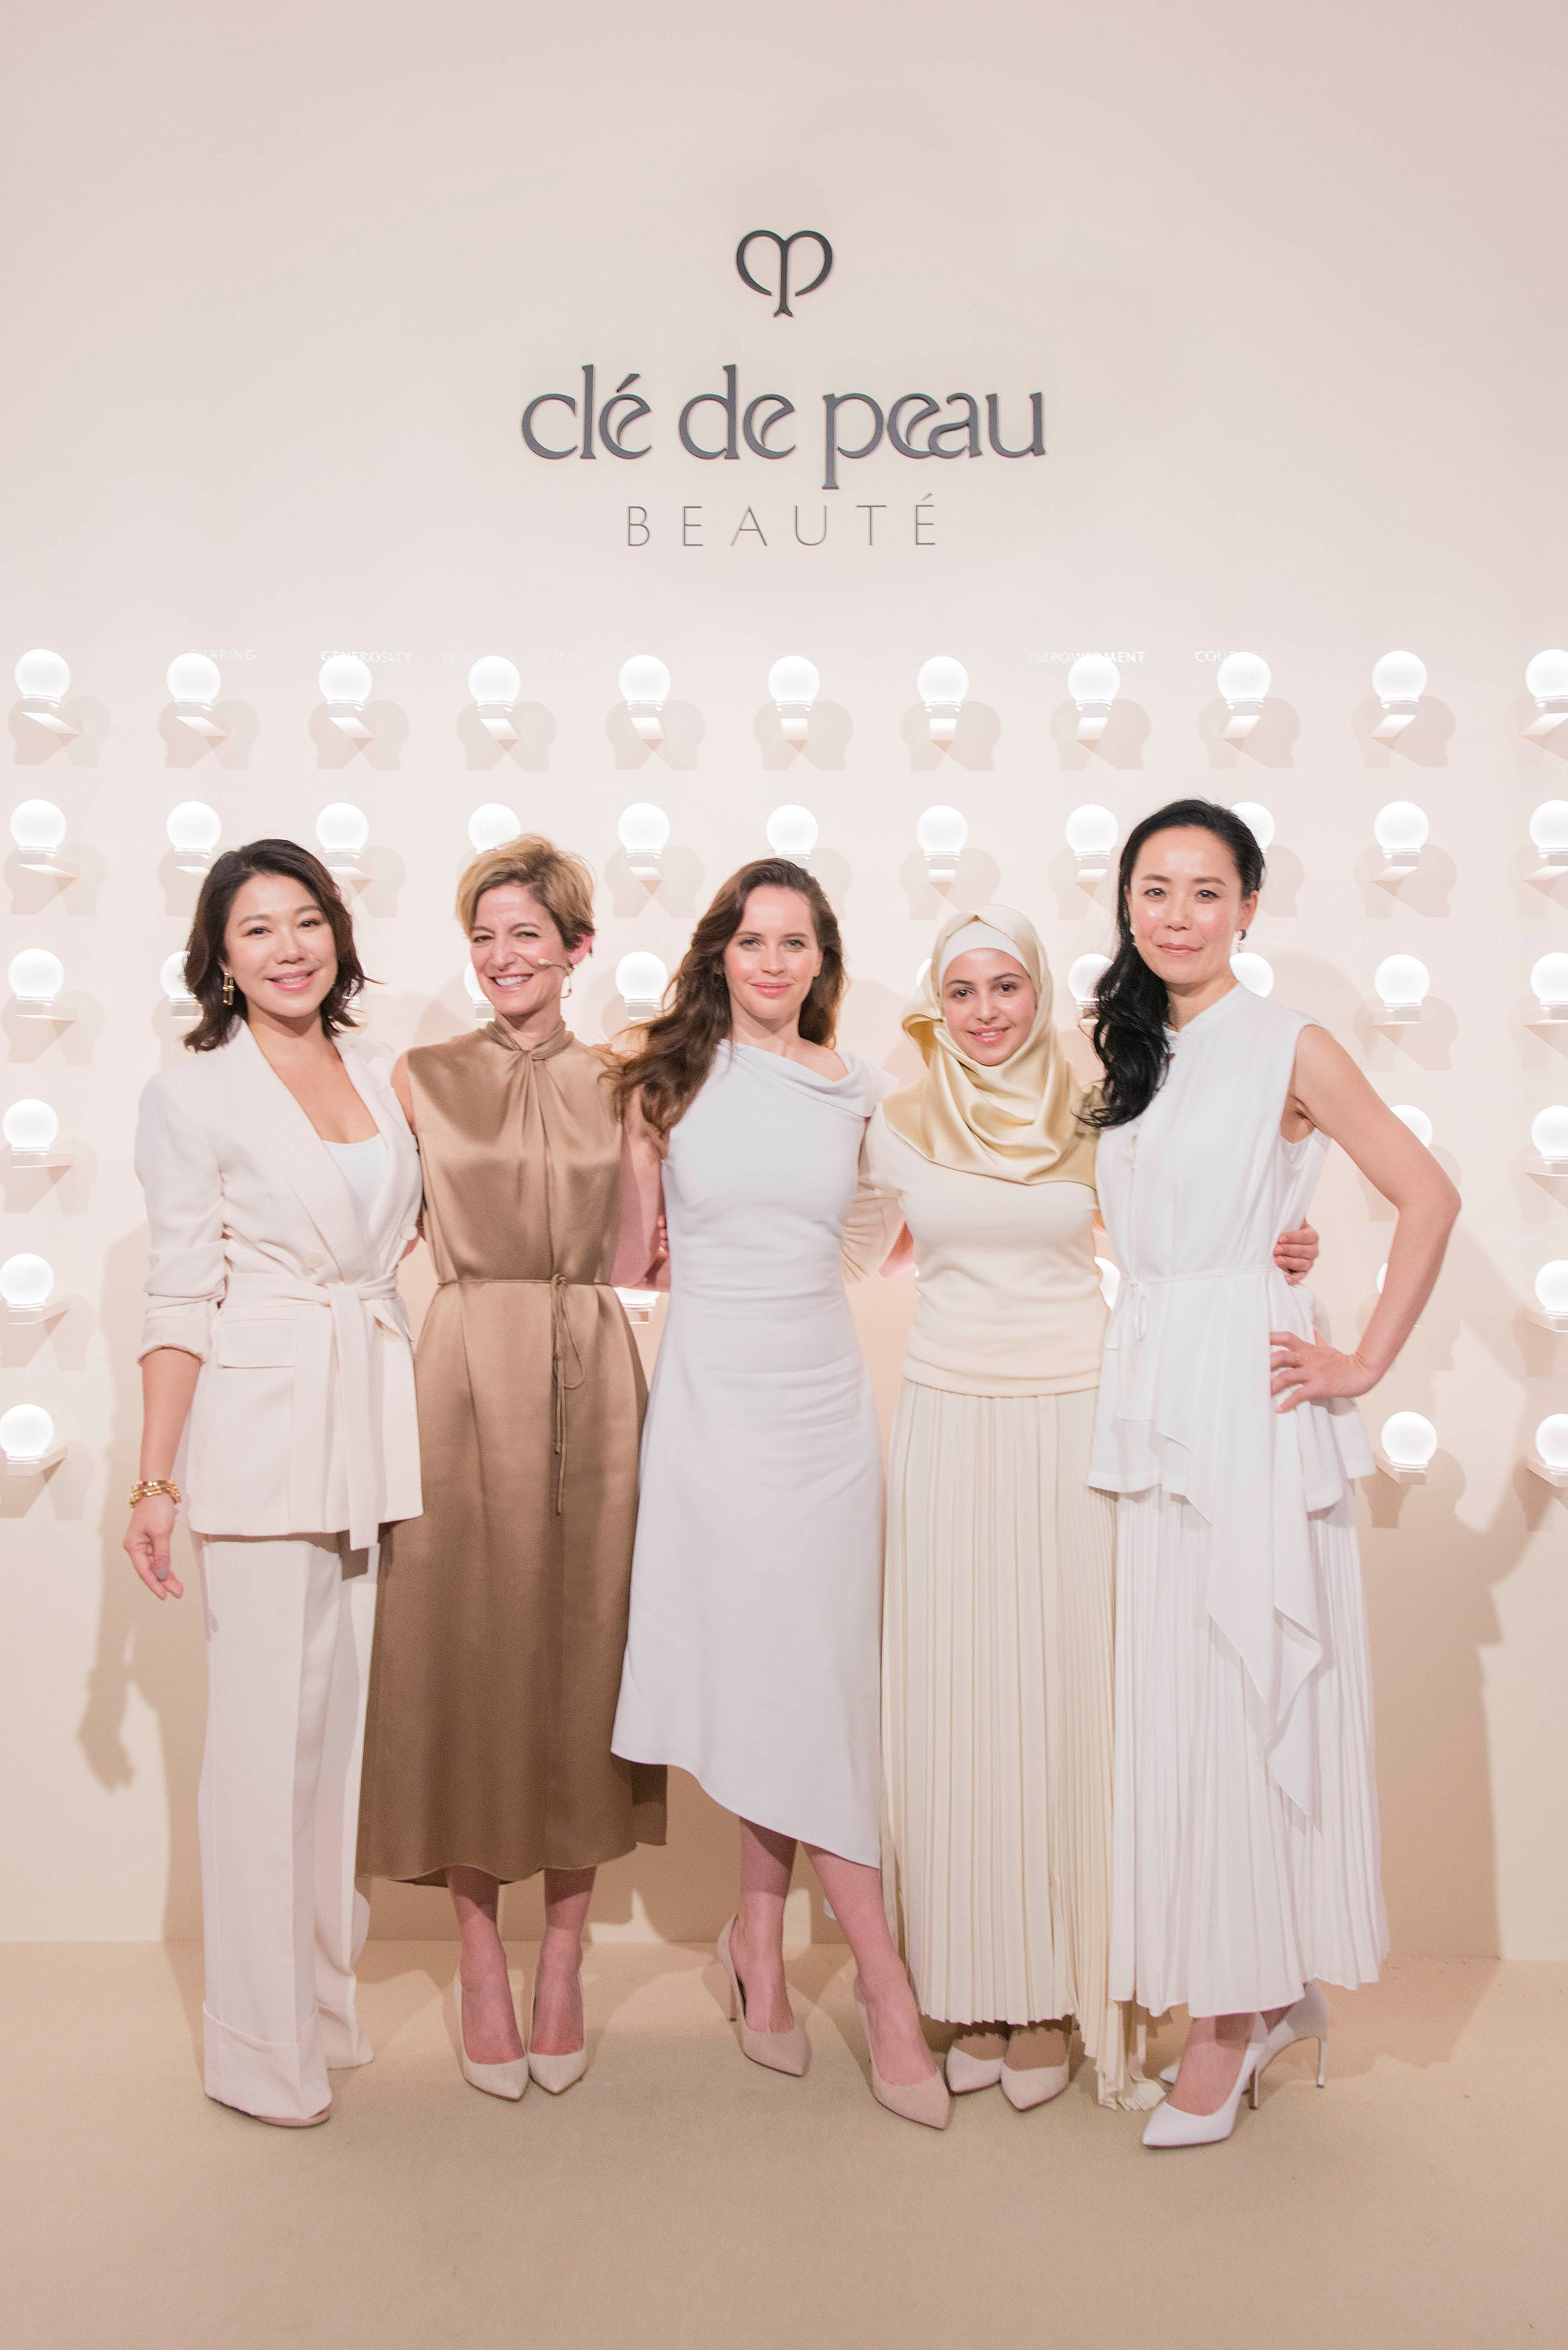 Left to right:  Actress Belinda Lee; Former  Glamour  Editor-in-Chief Cindi Leive; Felicity Jones; Power of Radiance Recipient  Muzoon Almellehan ; Film Director Naomi Kawase